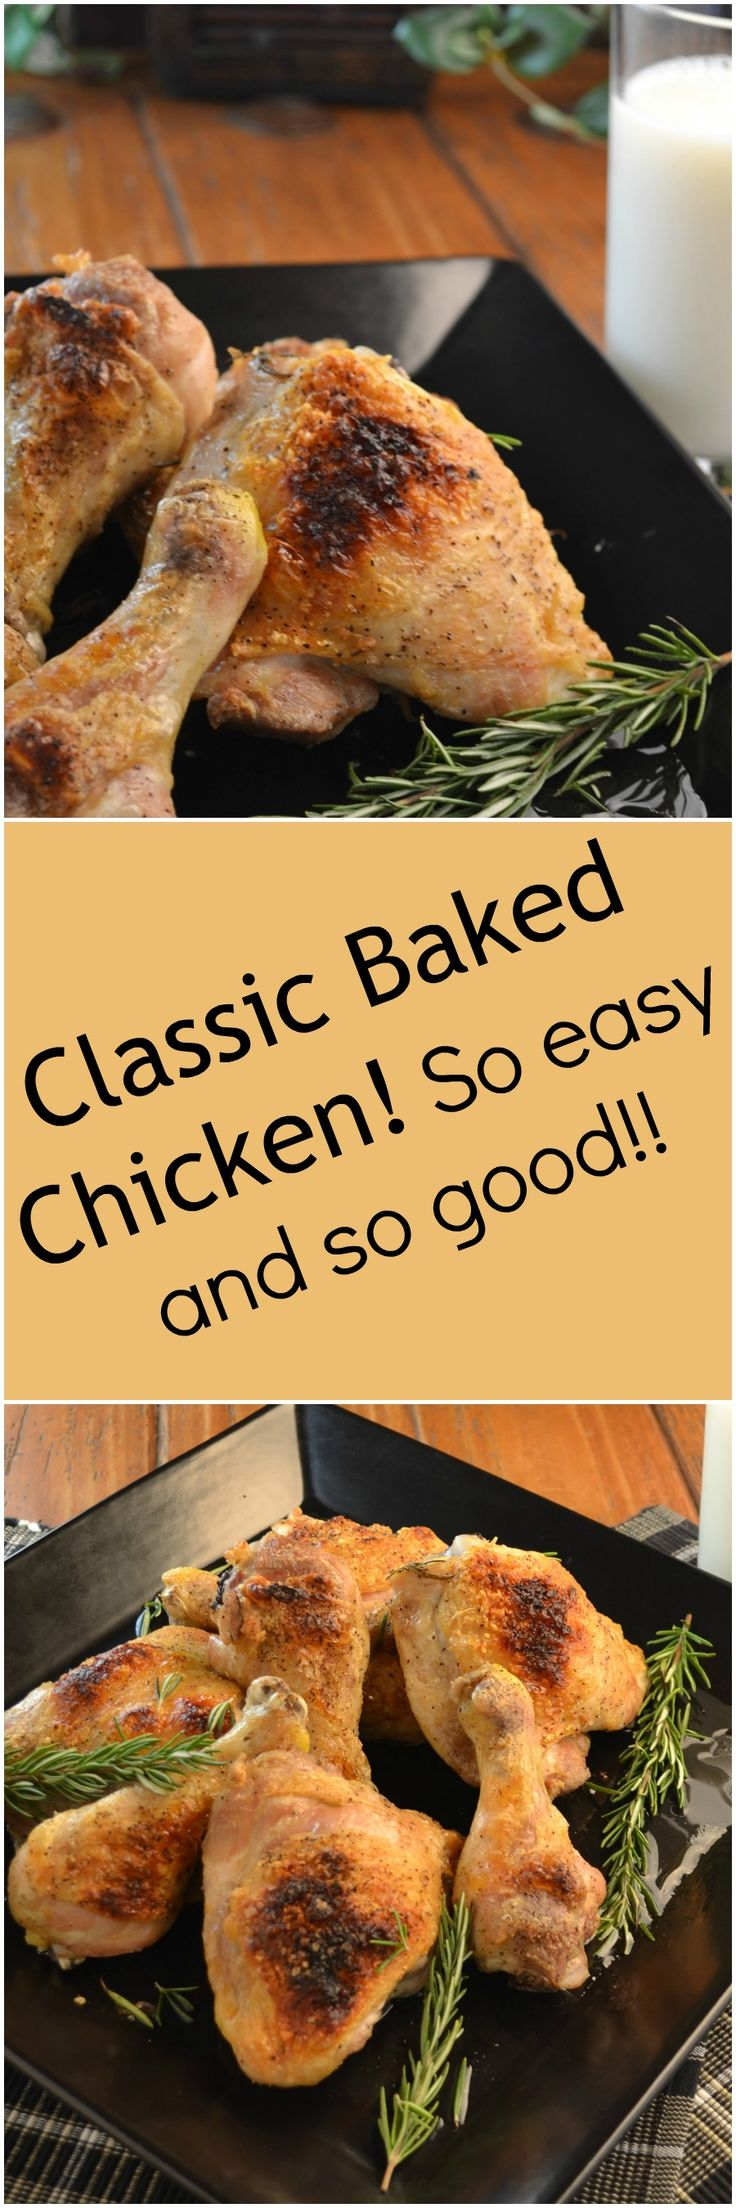 Classic Baked Chicken. Every home cook should know how to make it! It ...